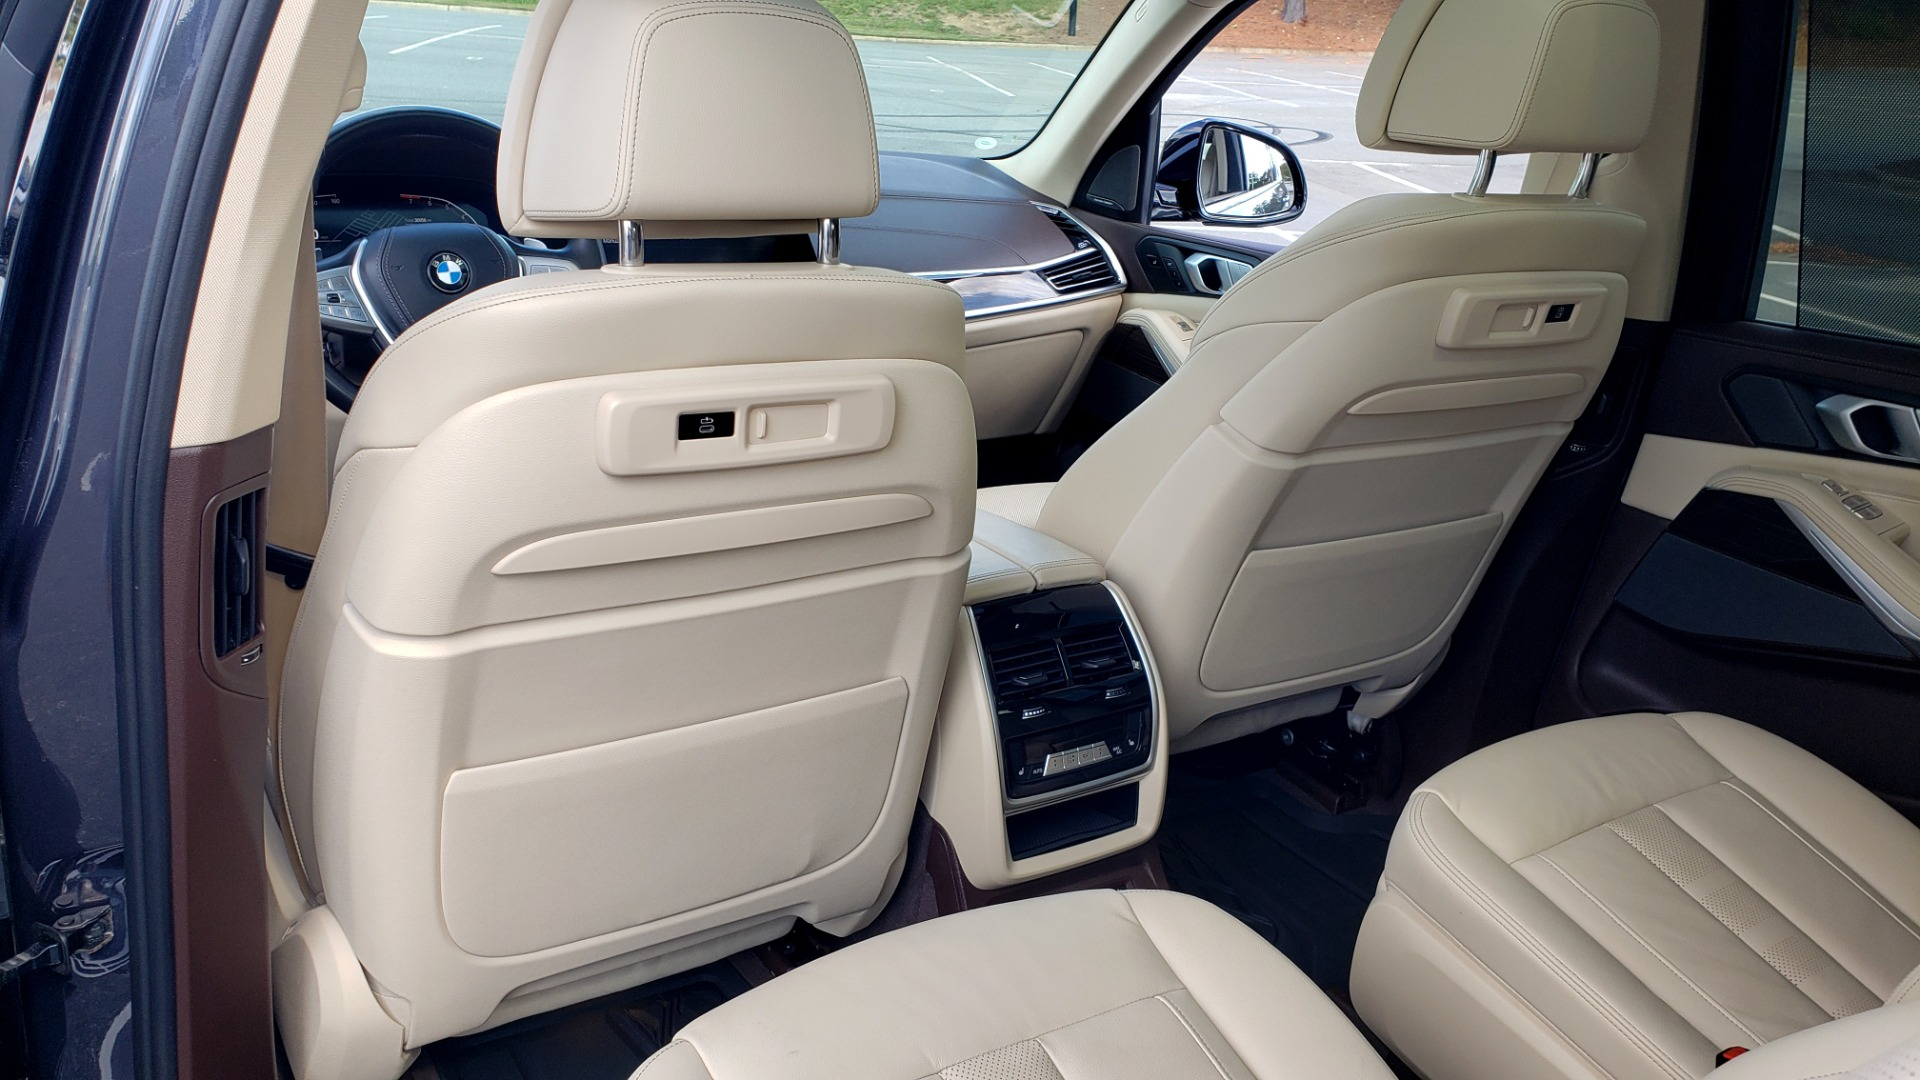 Used 2019 BMW X7 XDRIVE40I PREMIUM / LUXURY / COLD WEATHER / PARK ASST / PANORAMIC SKY / TOW for sale $75,999 at Formula Imports in Charlotte NC 28227 72